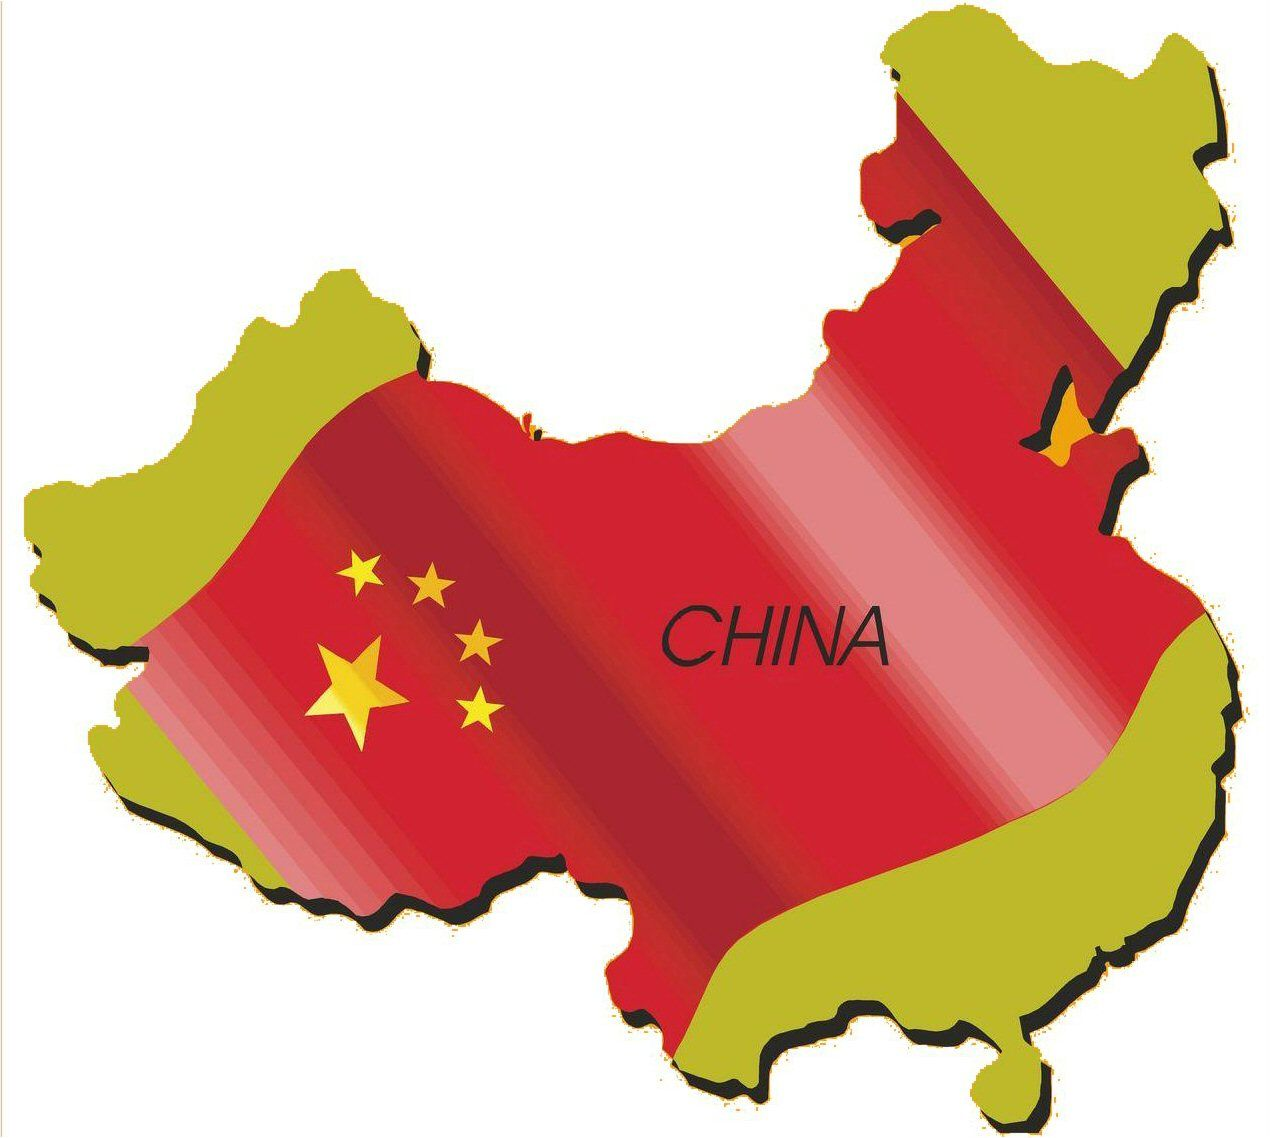 China Facts For Children A To Z Kids Stuff World Thinking Day China China Facts